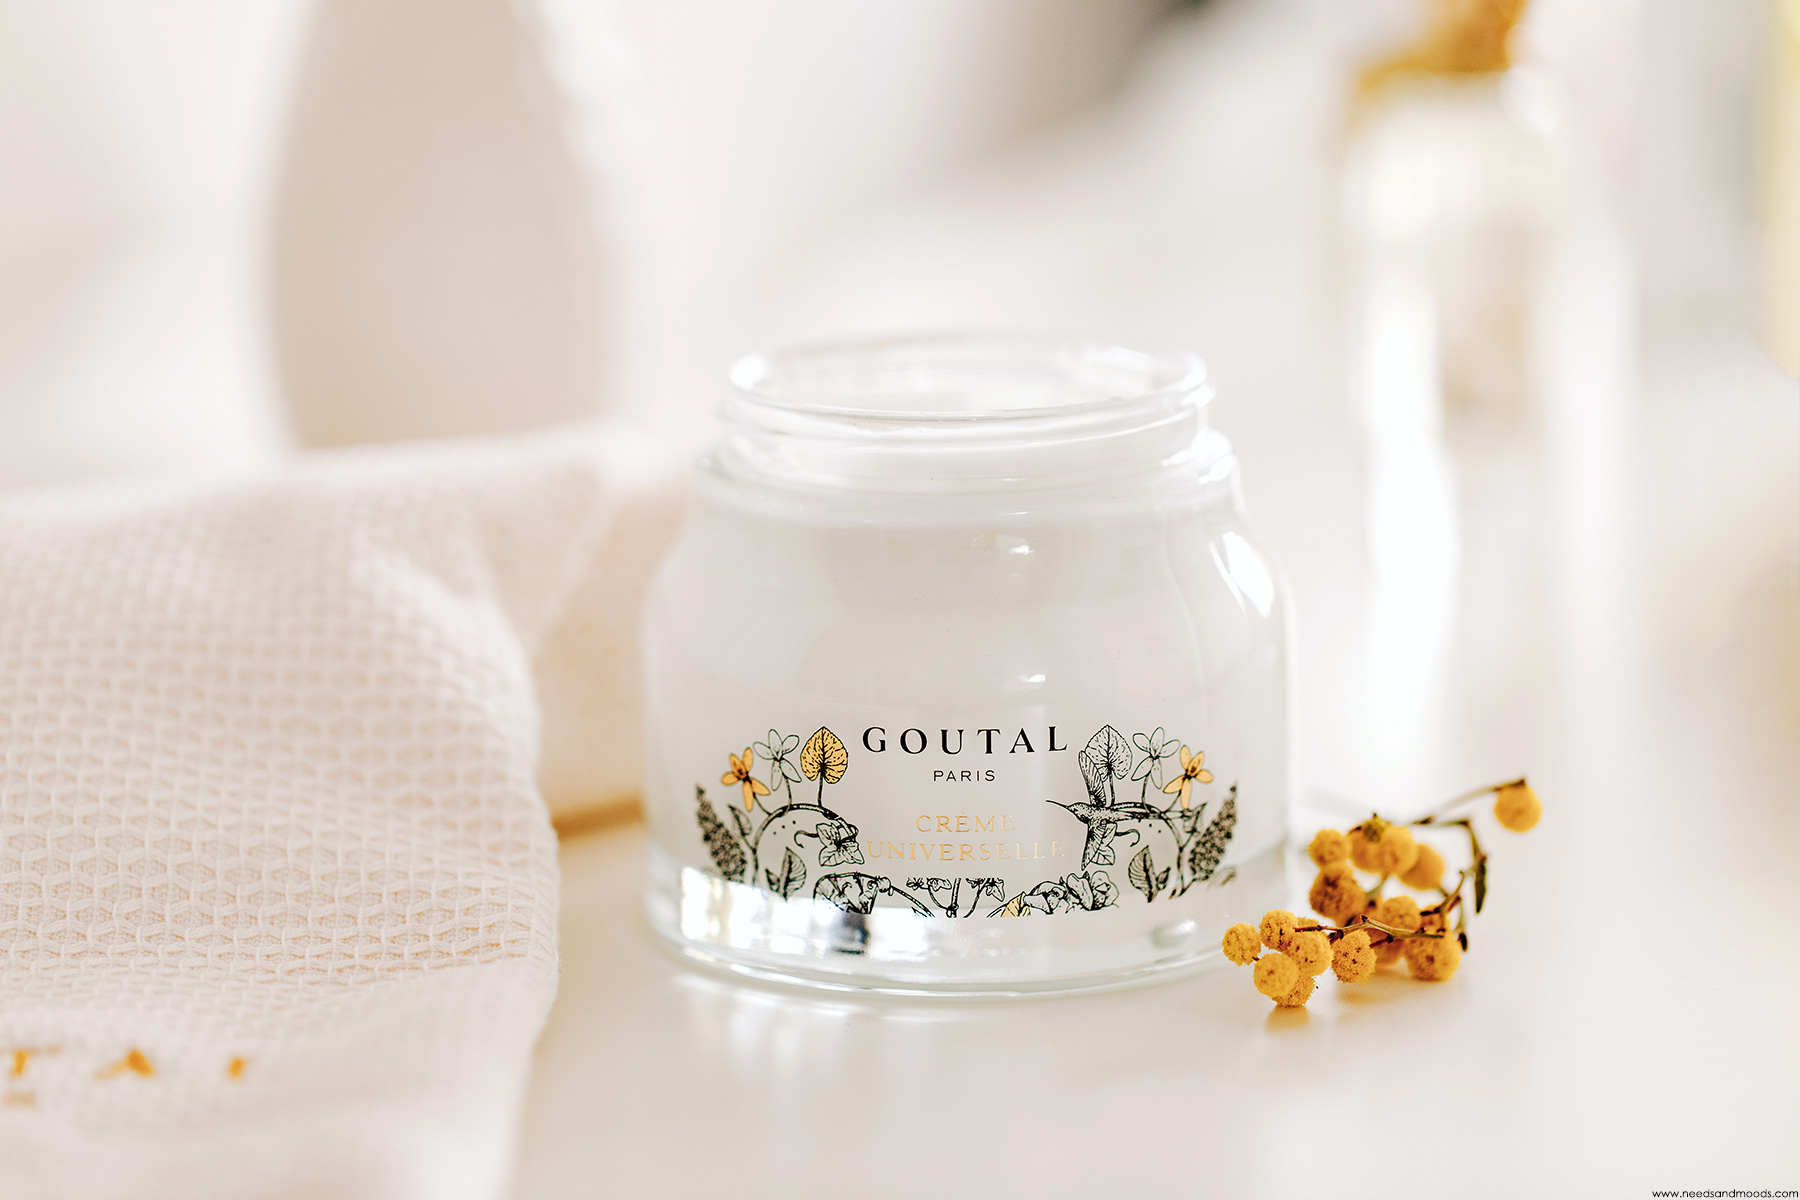 goutal creme universelle